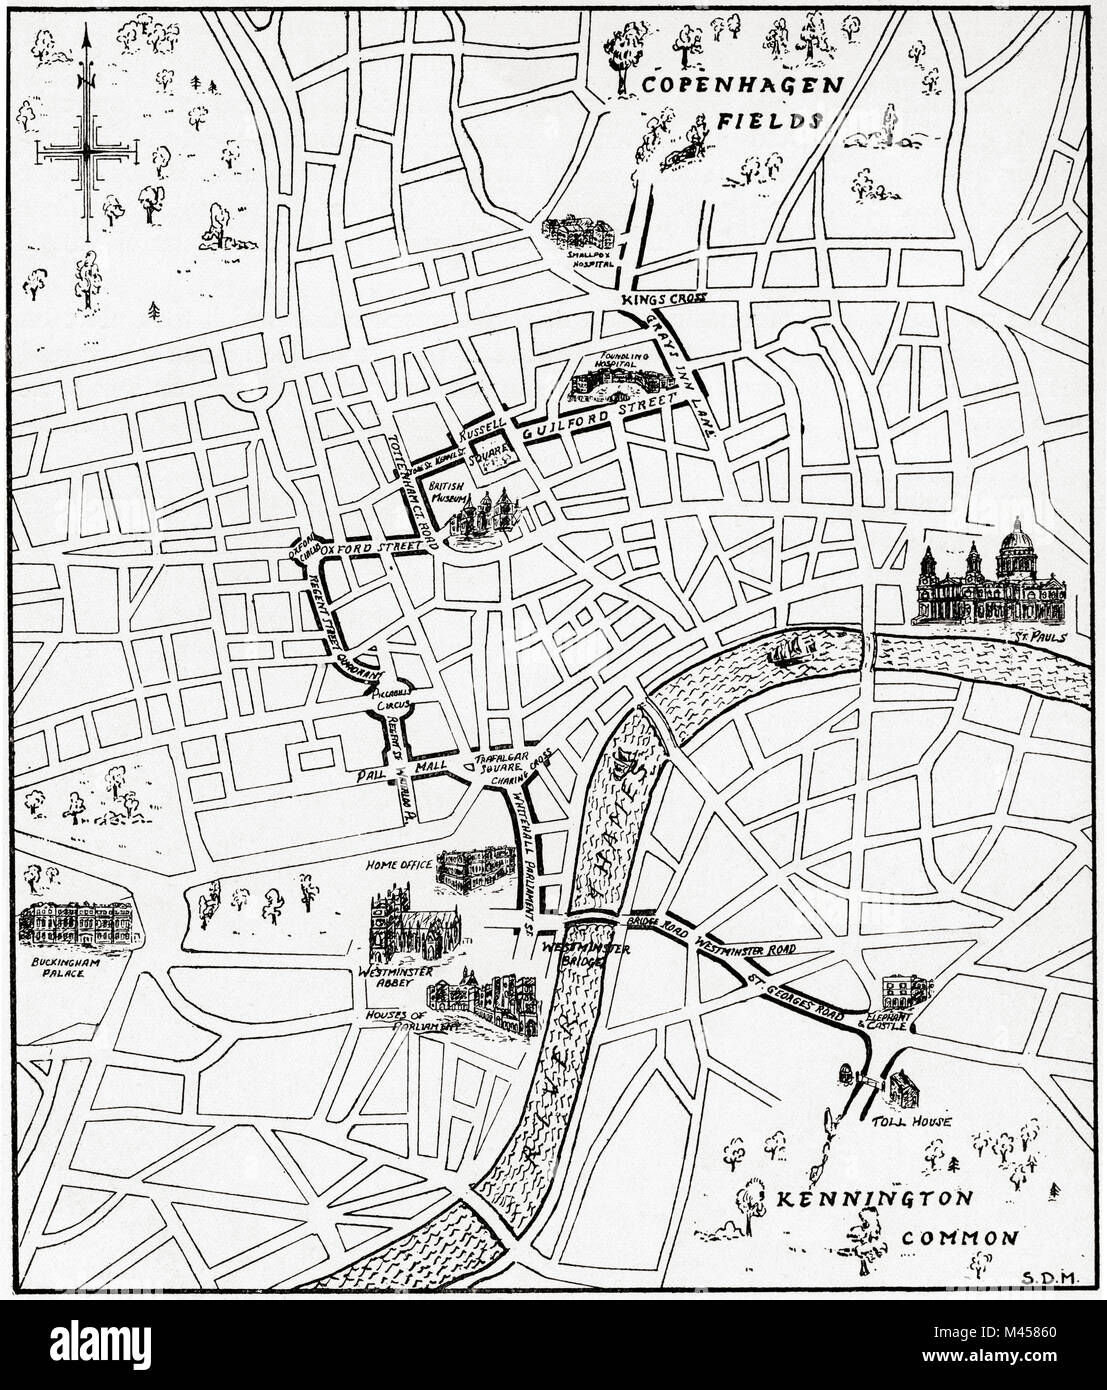 Map showing the route of the demonstration at Copenhagen Fields, London, England 21 April 1834 in protest against - Stock Image